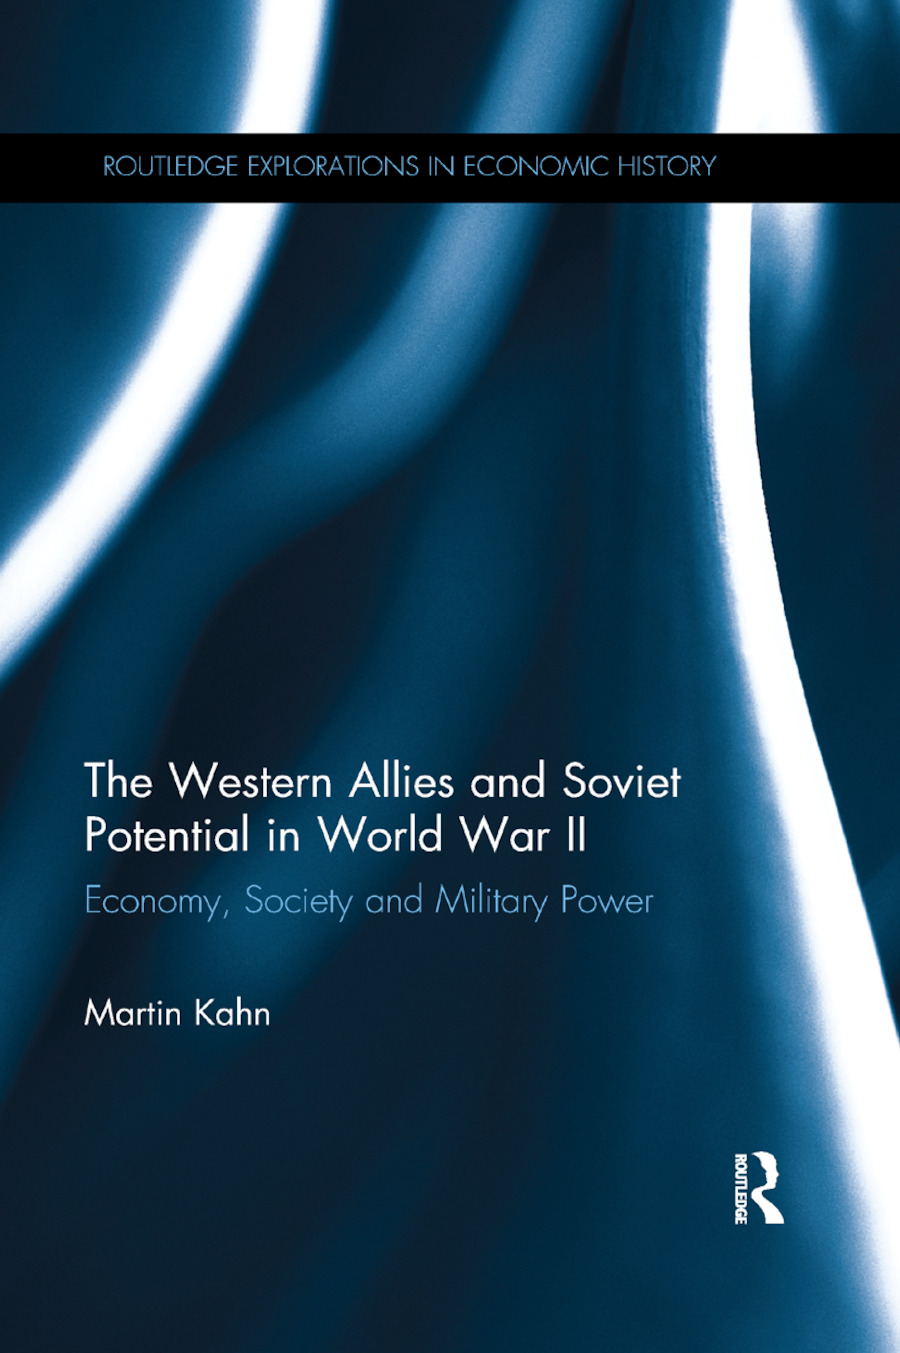 The Western Allies and Soviet Potential in World War II: Economy, Society and Military Power book cover